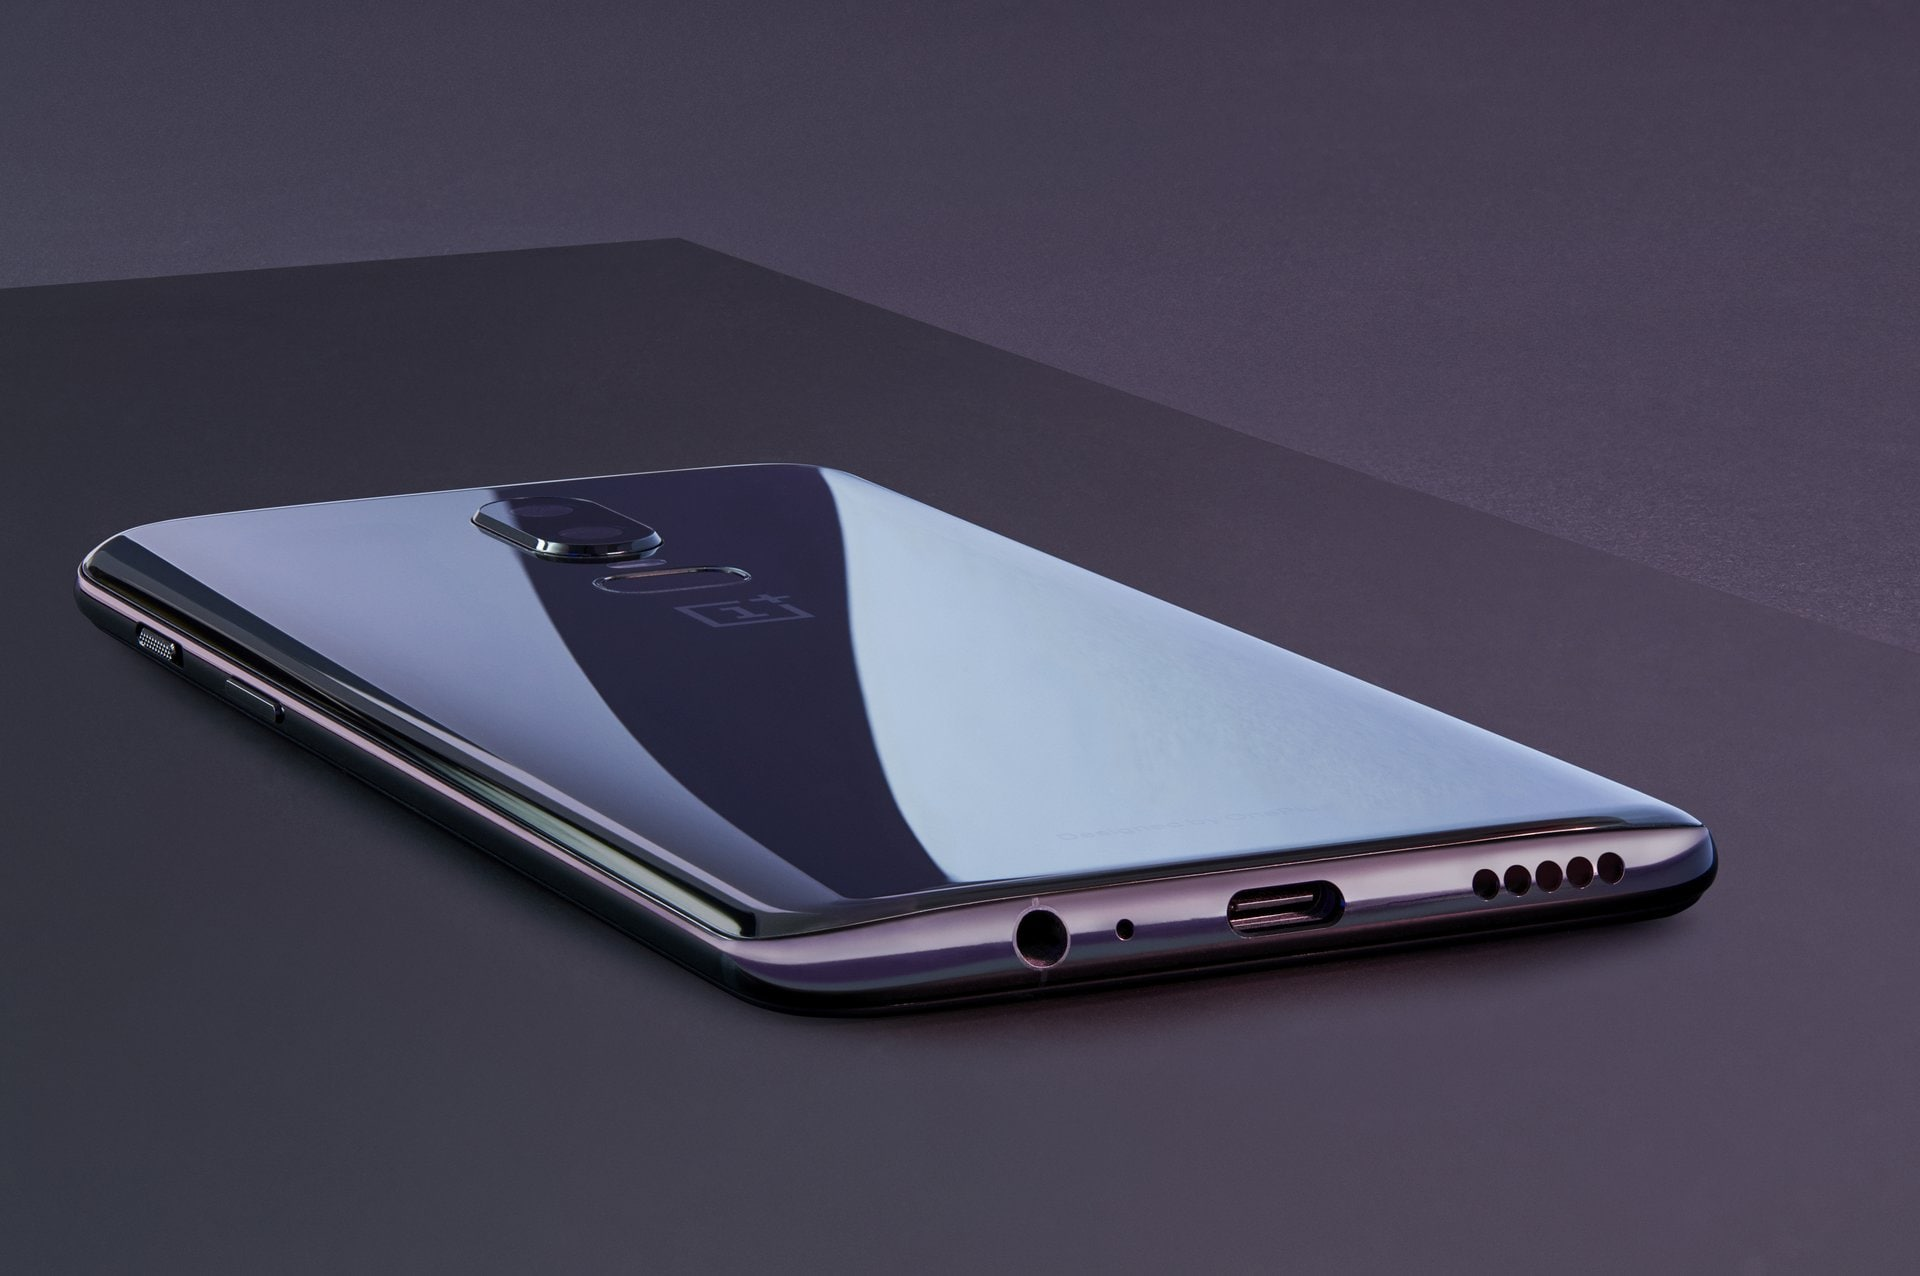 oneplus 6 mirror black (3)